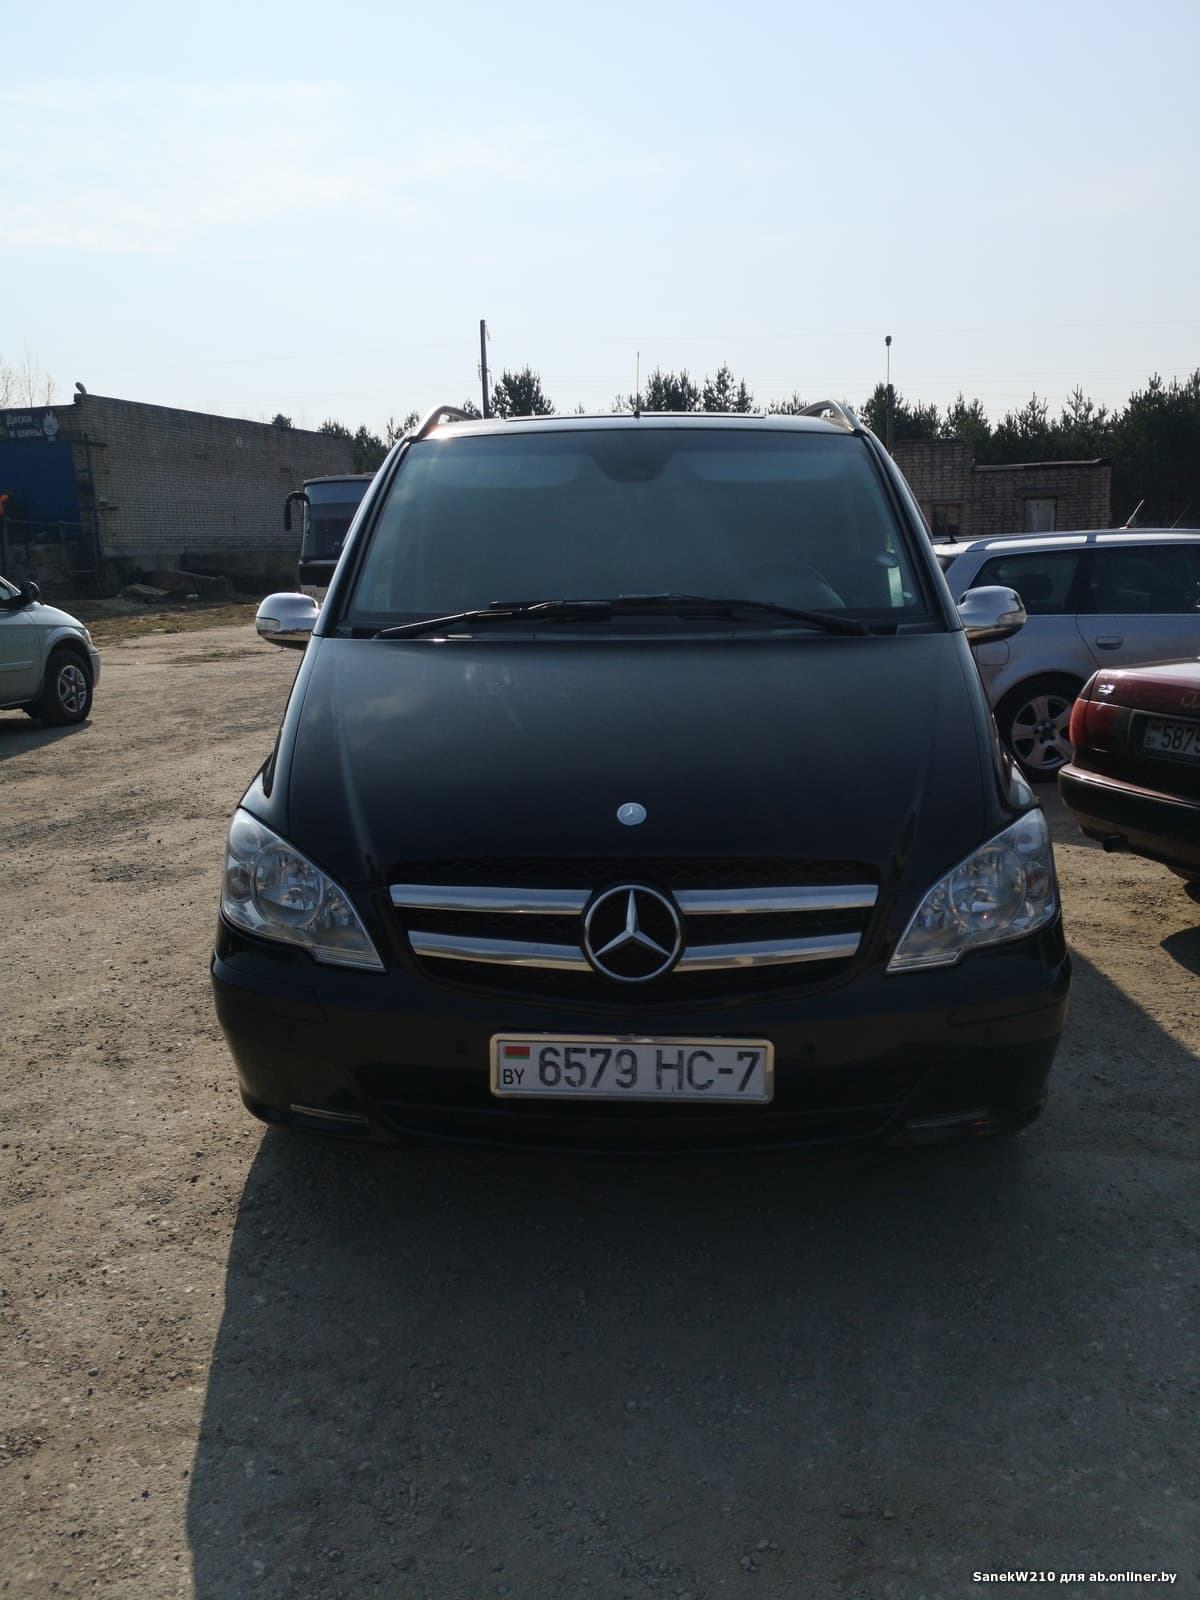 Mercedes-Benz Viano Extralong